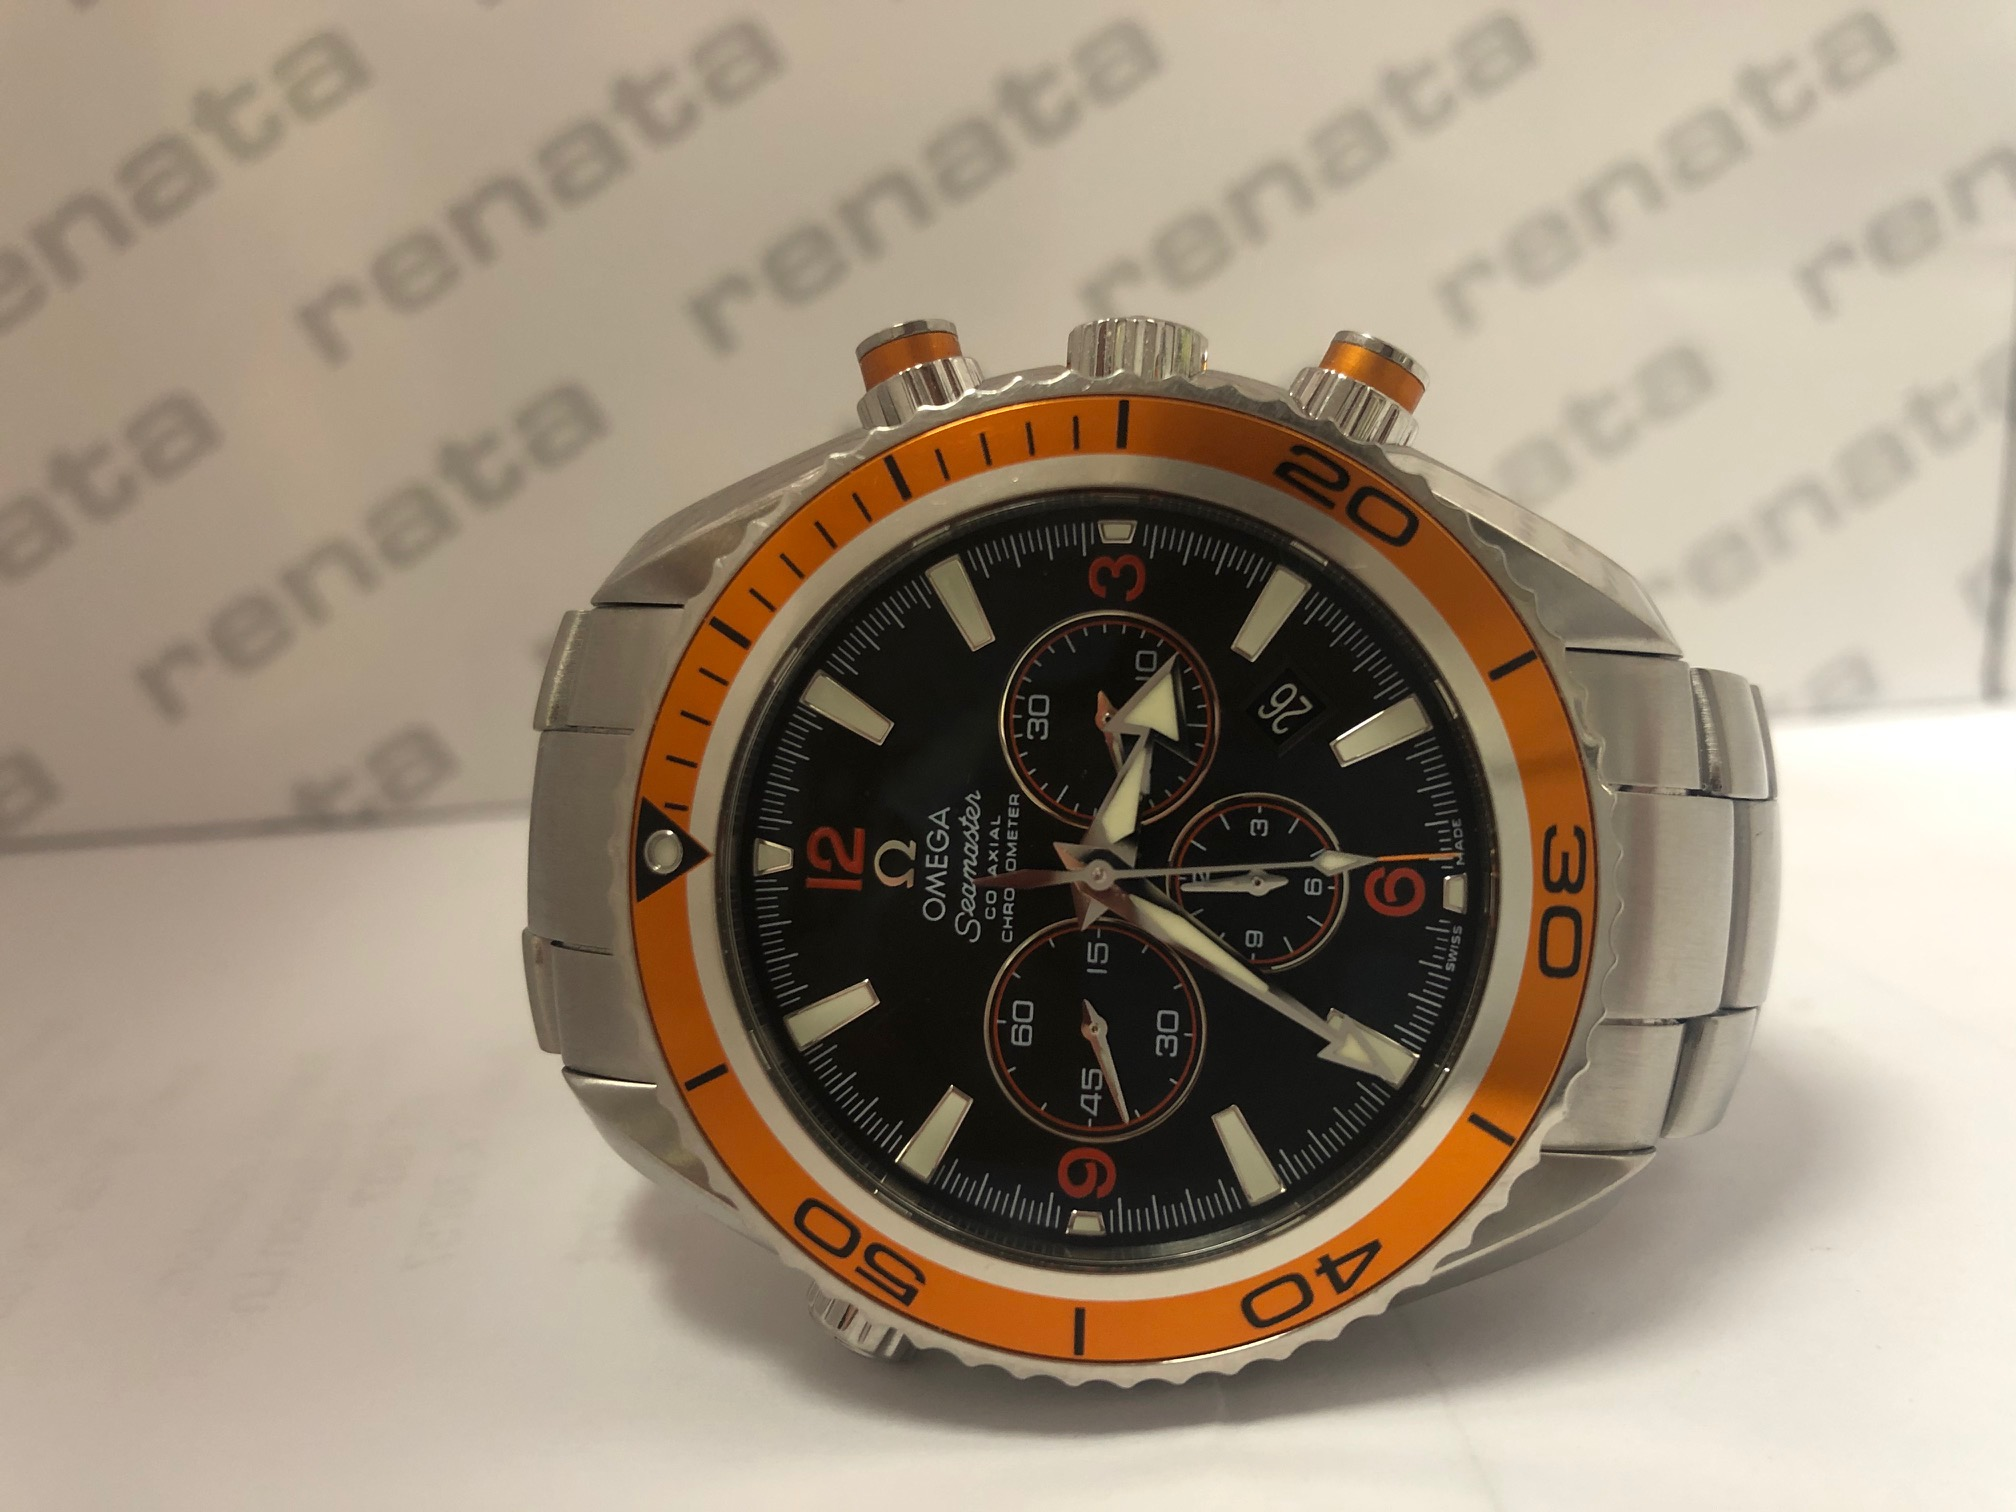 Omega Watches Service & Repair - Quality and Experience